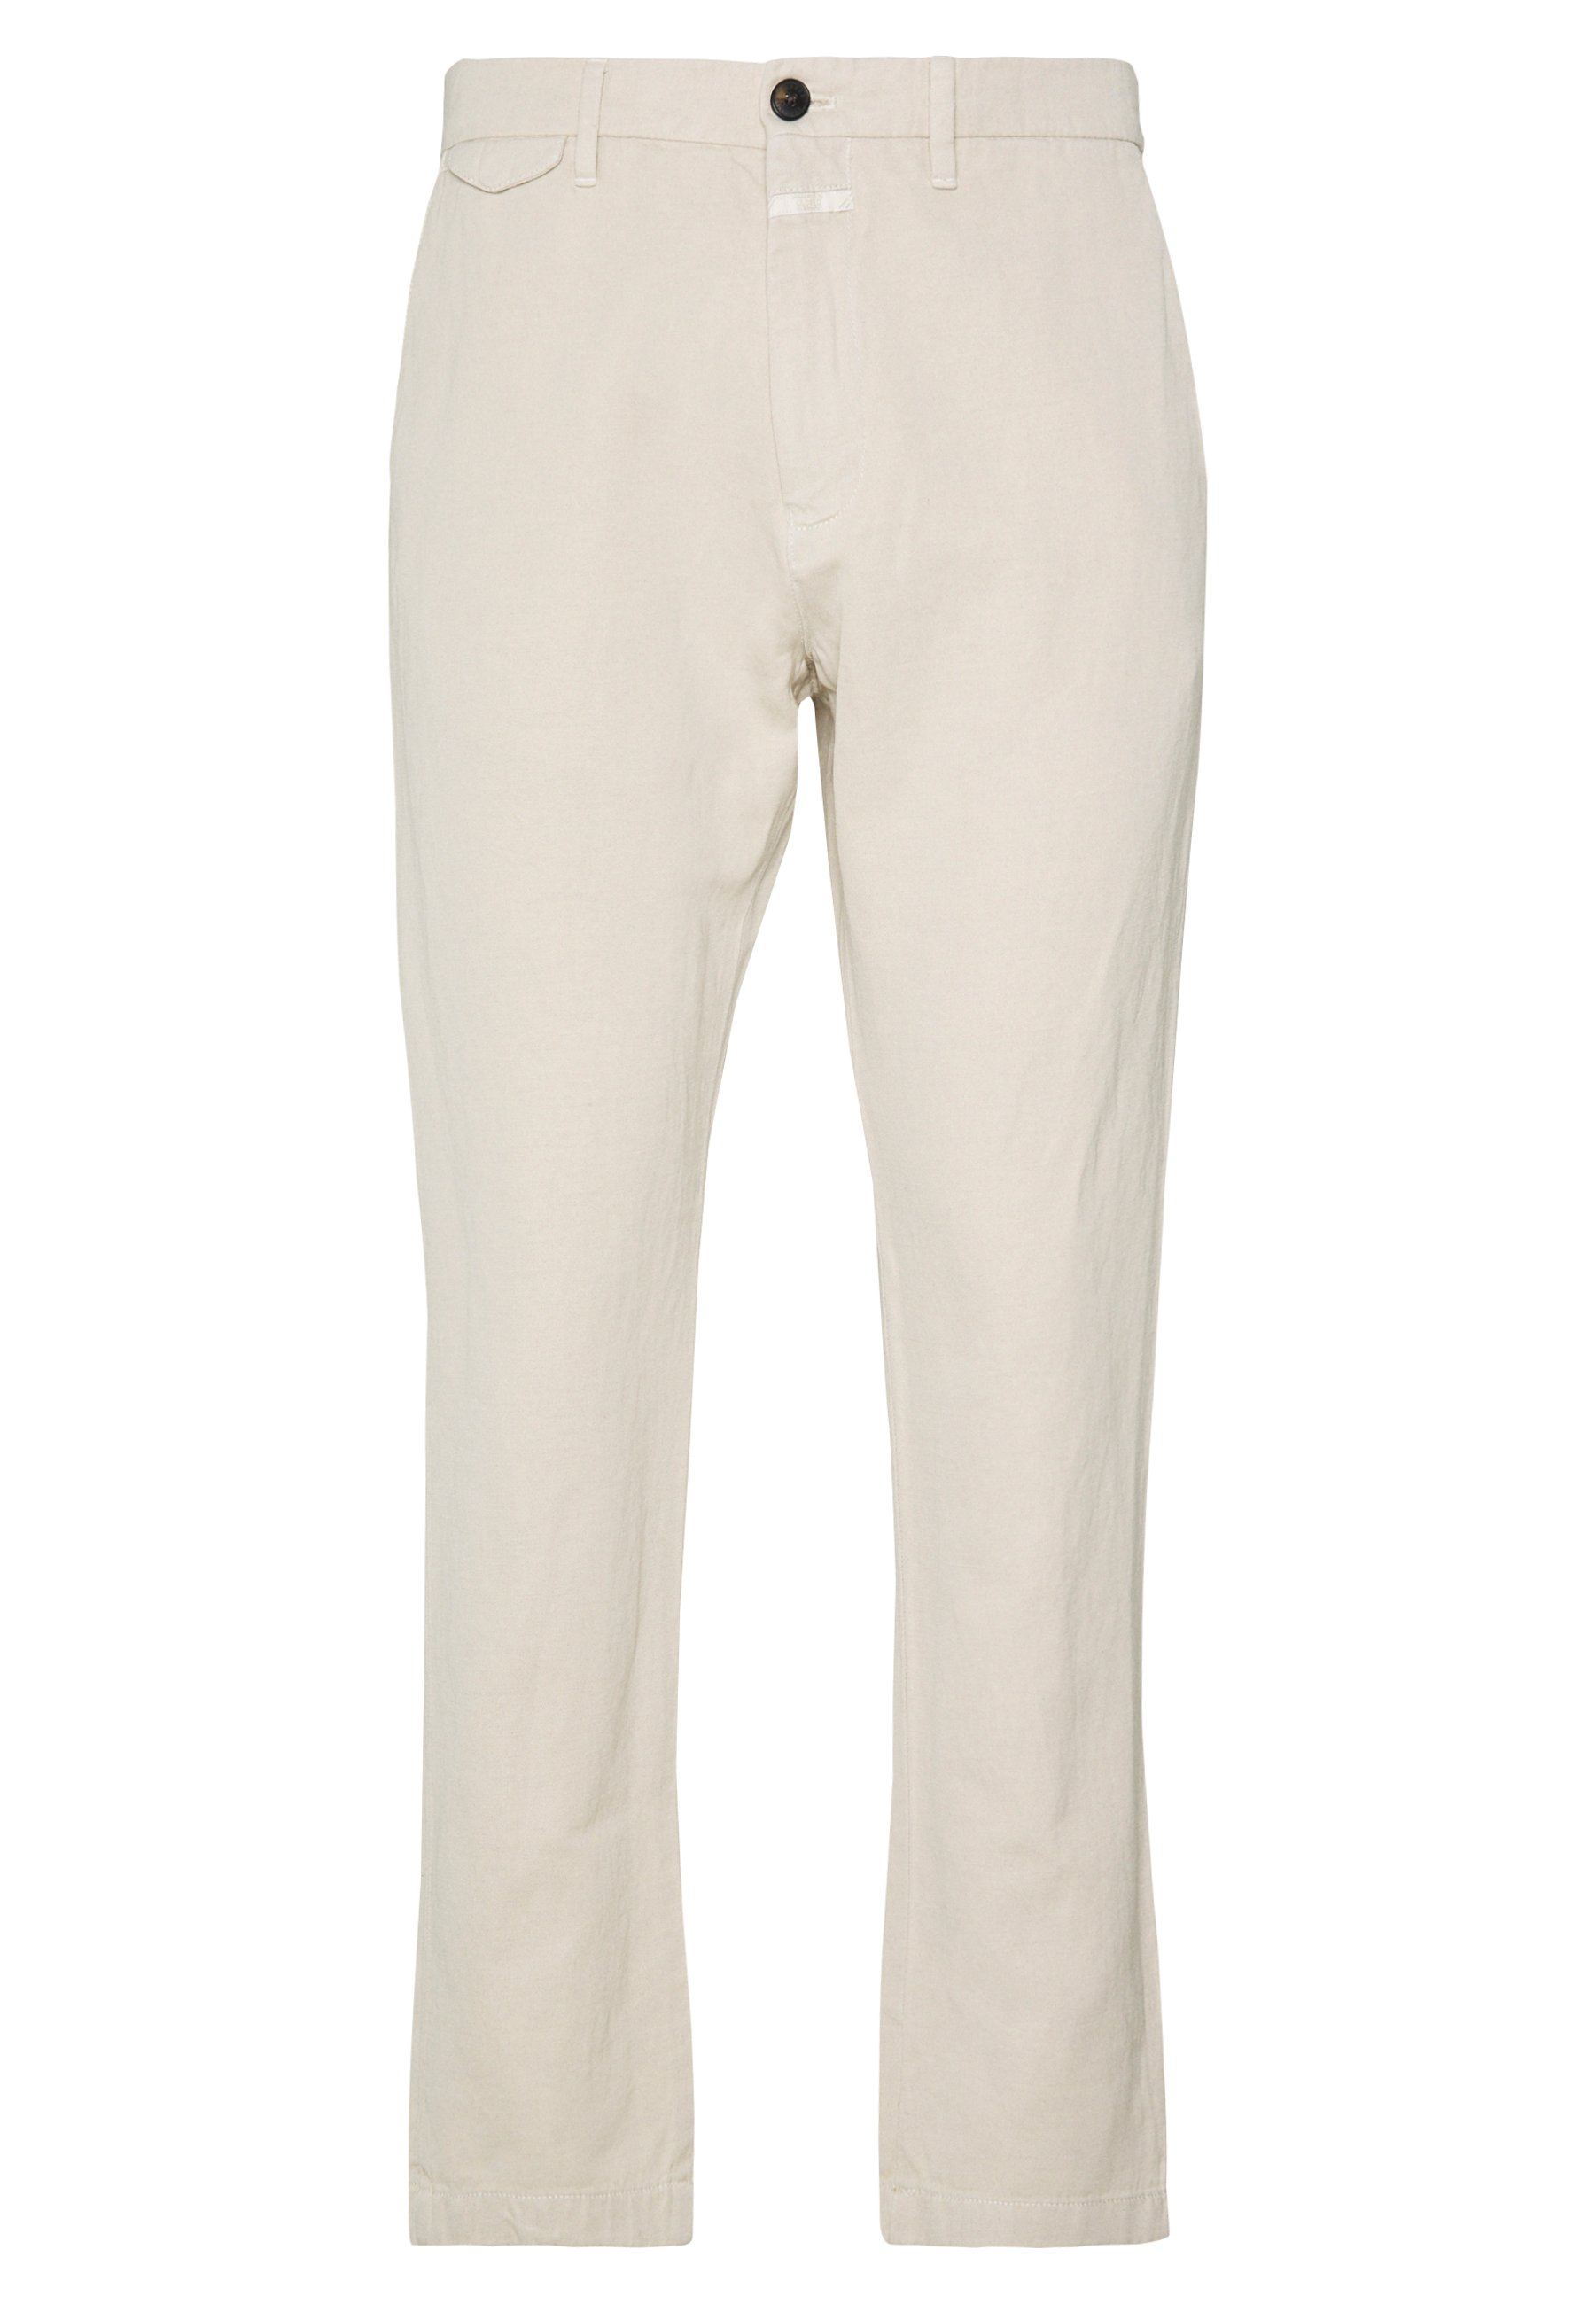 Closed Atelier Cropped - Chinot Barely Beige